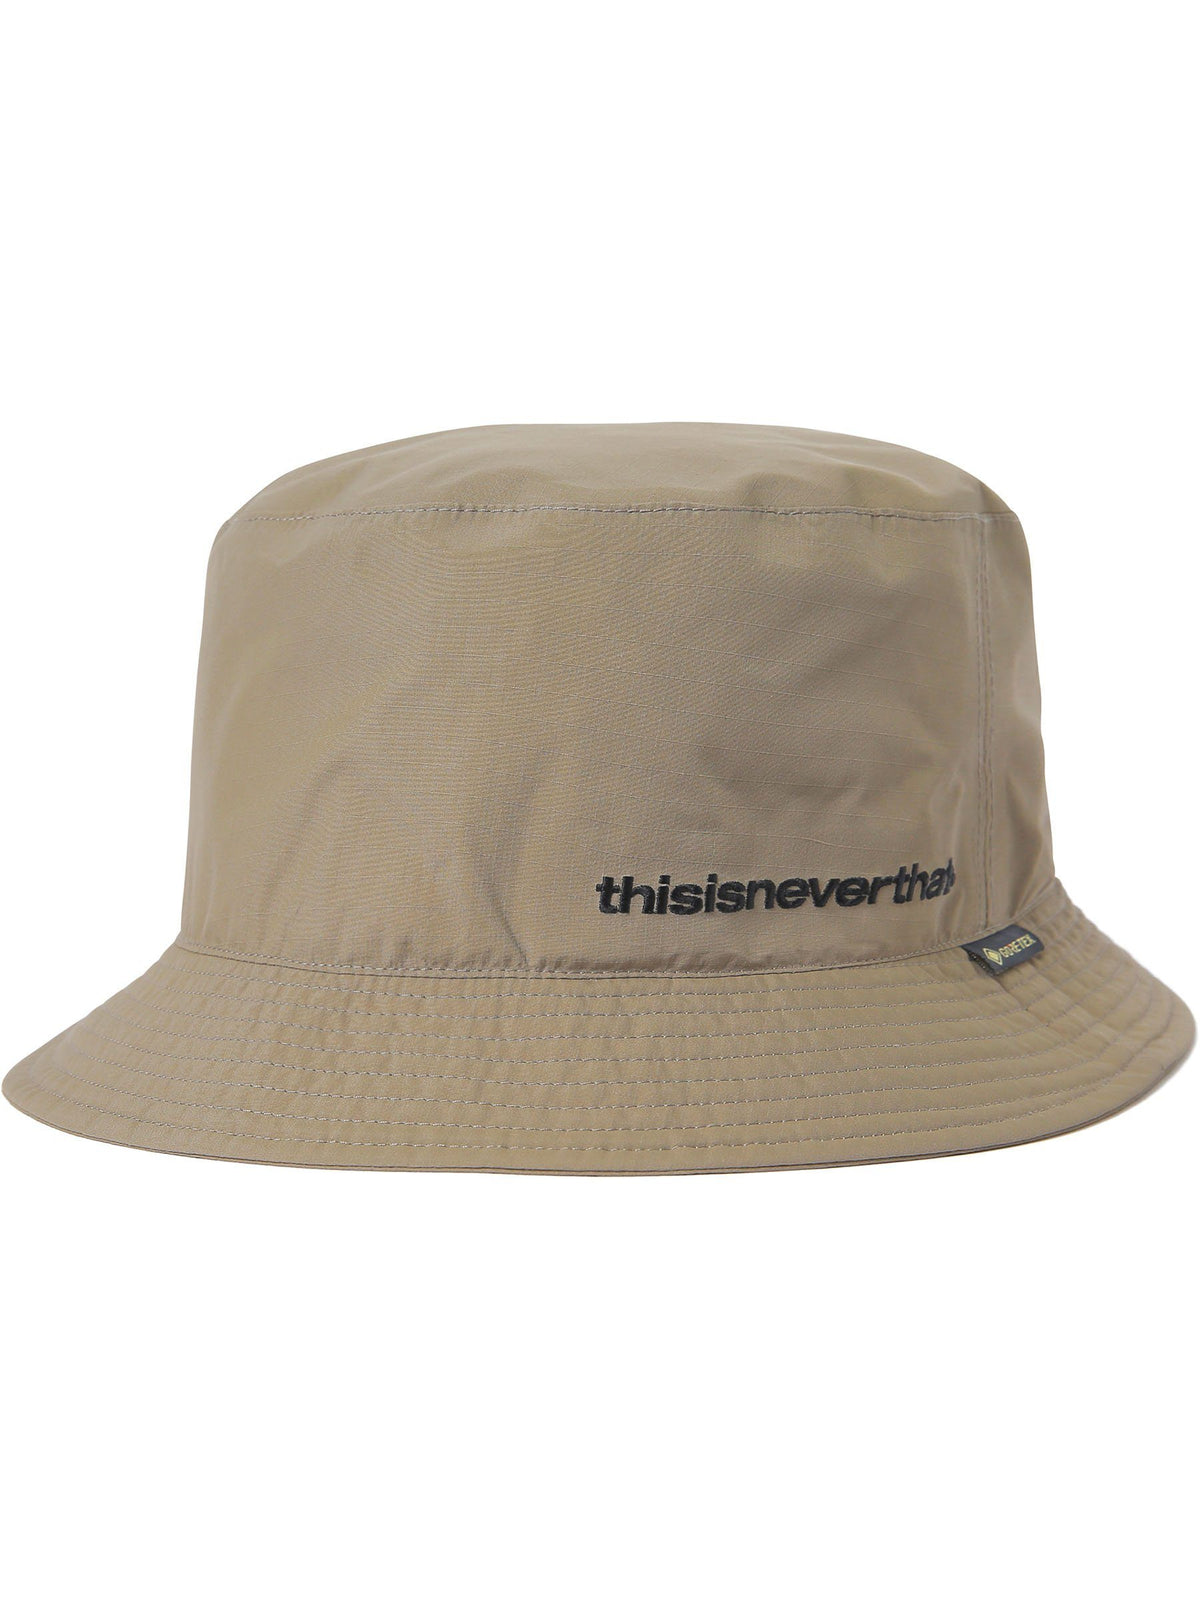 GORE-TEX Bucket Hat - thisisneverthat